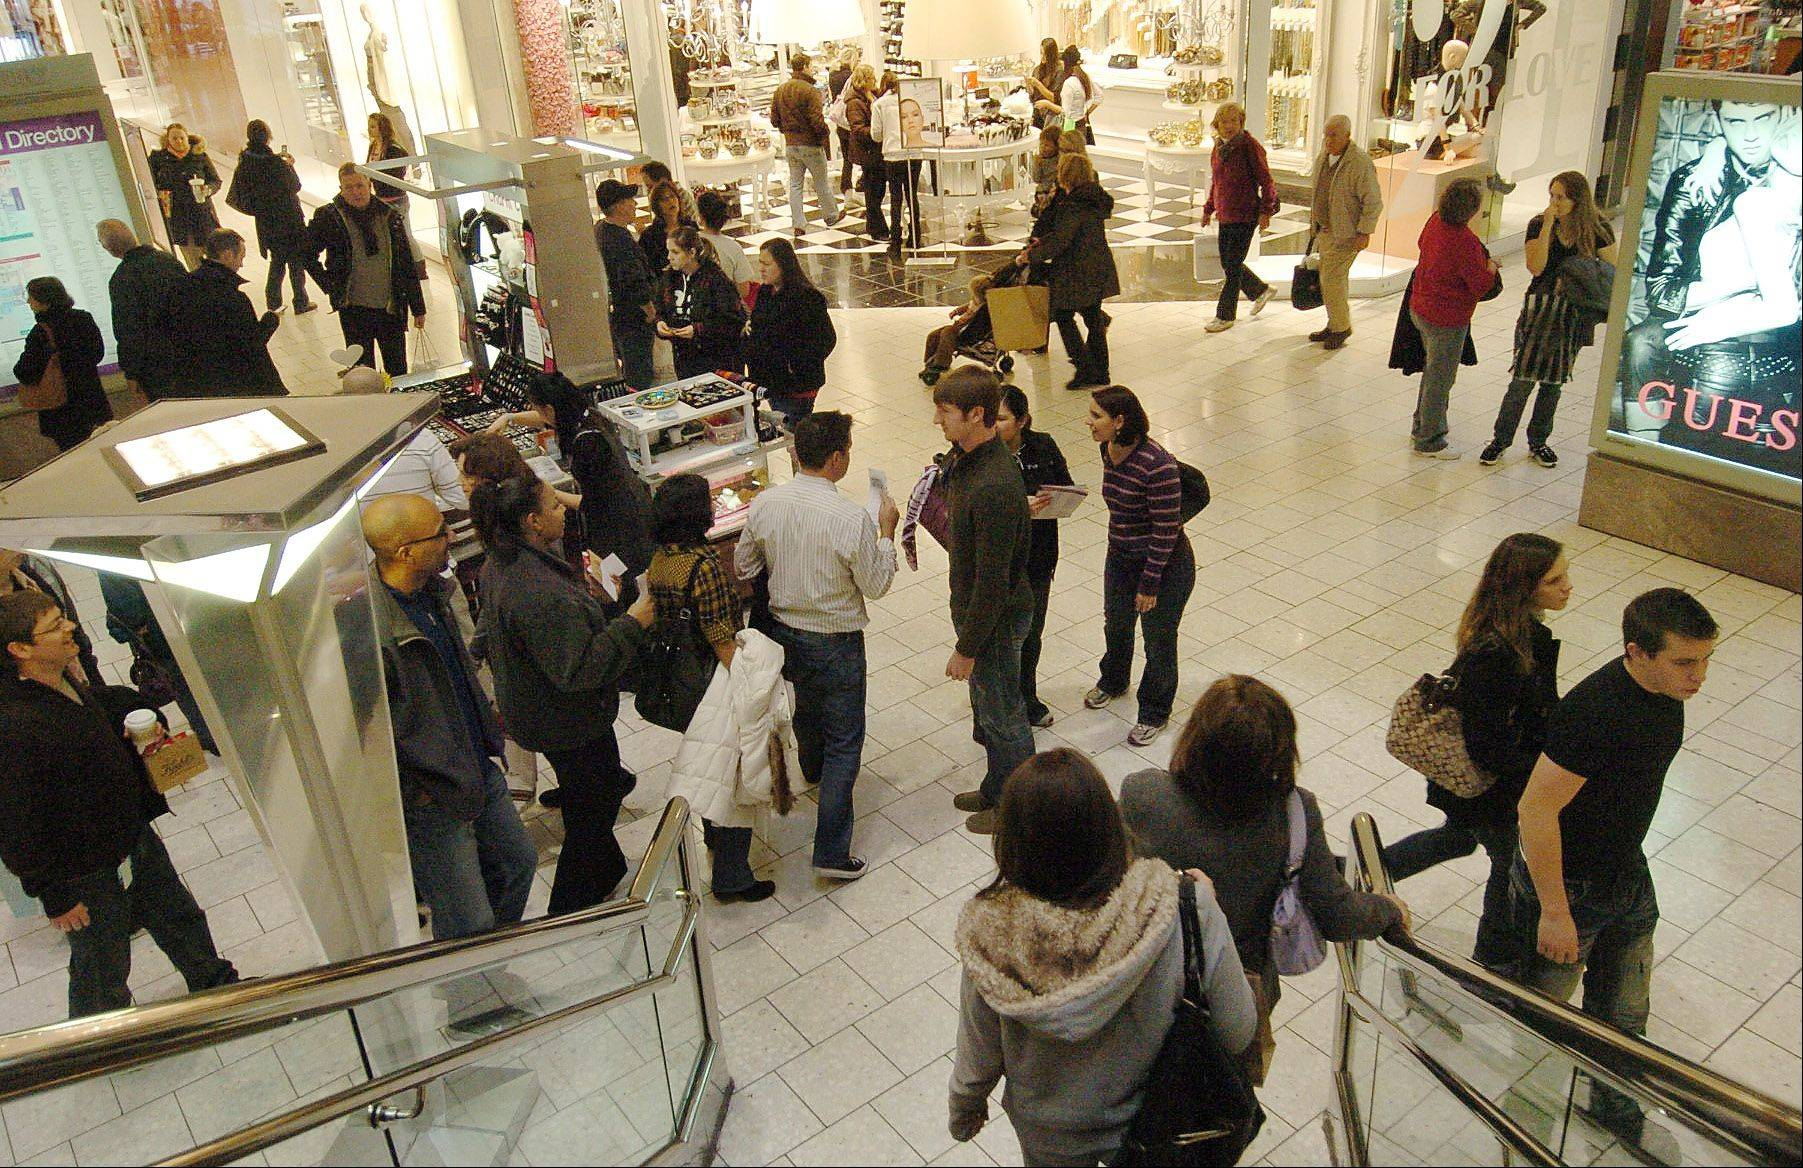 DAILY HERALD/Bob Chwedyk The latest sales data from the holiday season shows that U.S. shoppers increasingly prefer to research clothes, TVs and shoes online, or �virtual window shop,� before heading to stores.